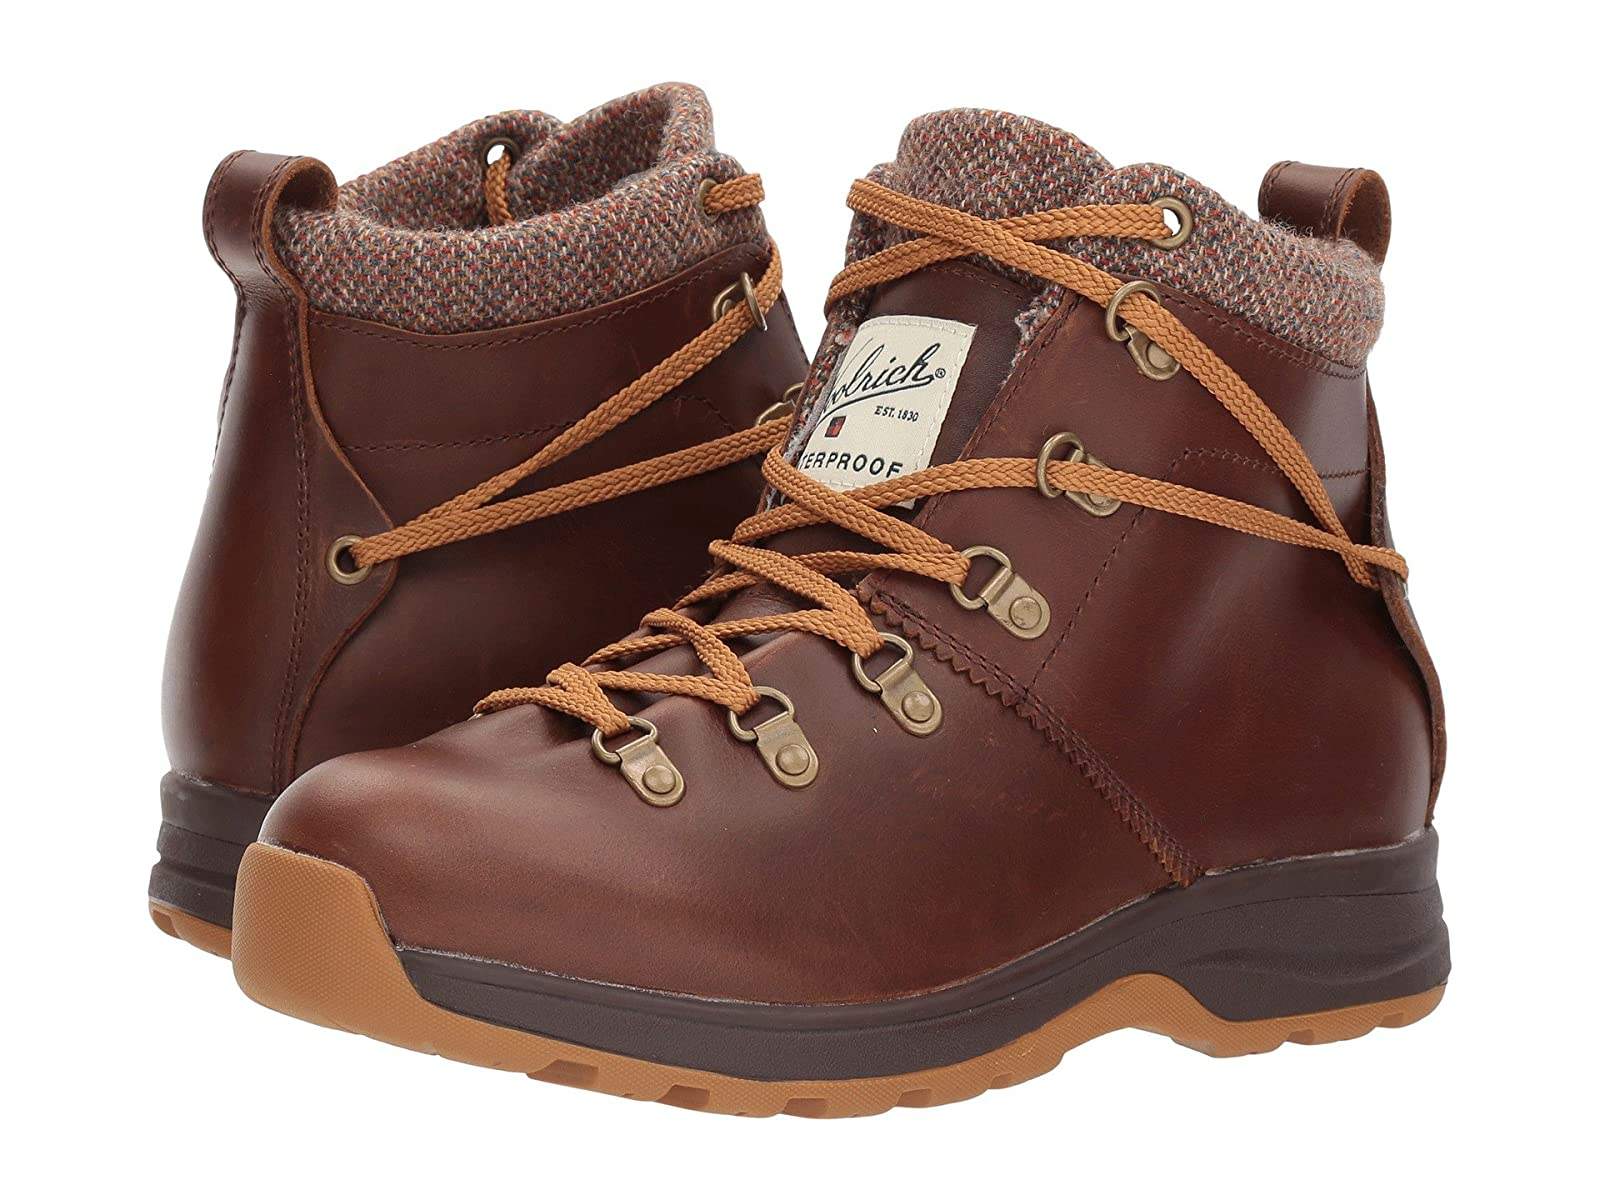 Woolrich Rockies IICheap and distinctive eye-catching shoes